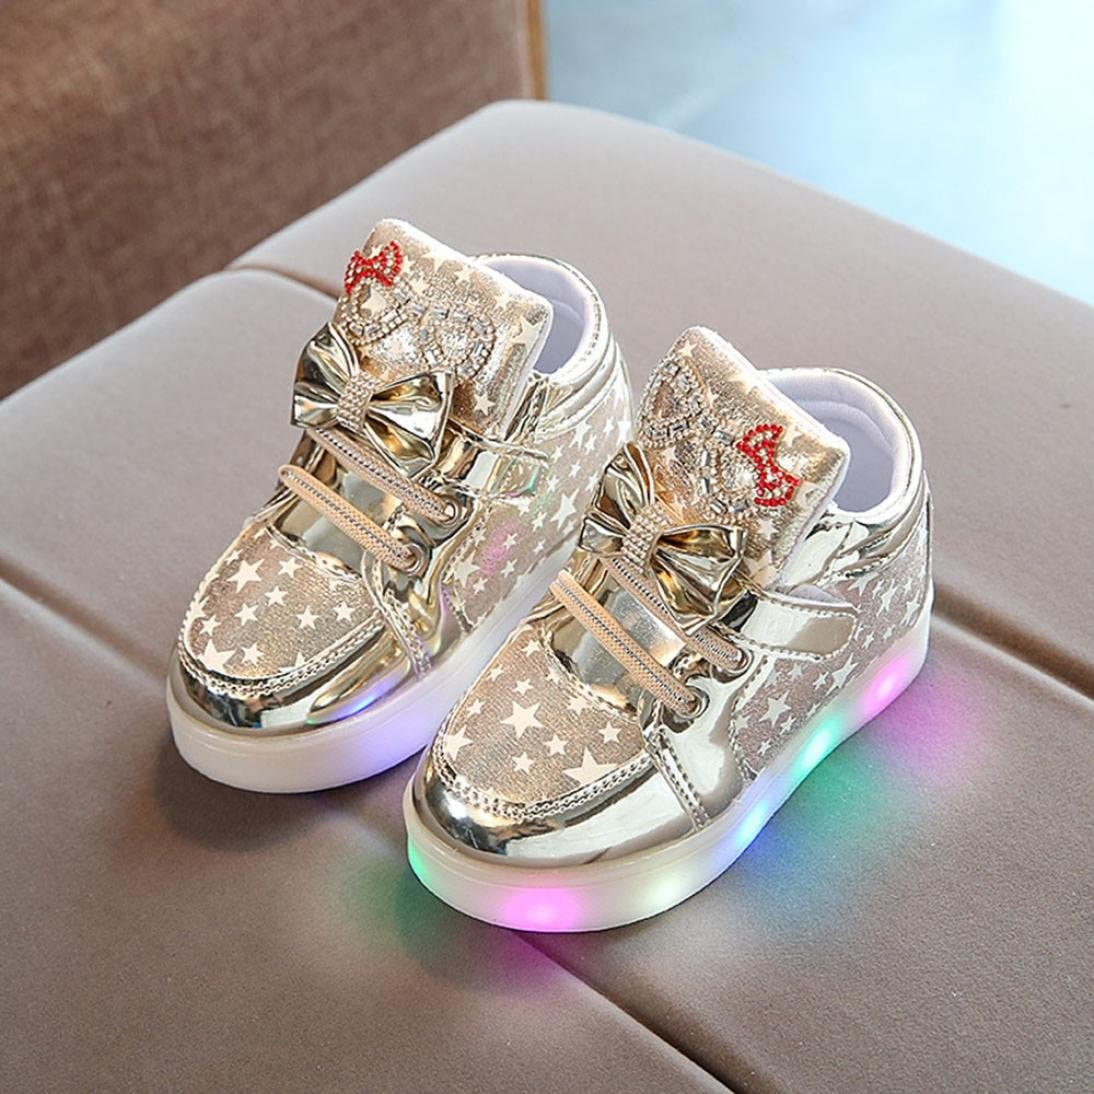 Sunbona Toddler Baby Boys Girls Heart LED Light Up Skate High-Top Sneakers Flat Flashing Luminous Shoes